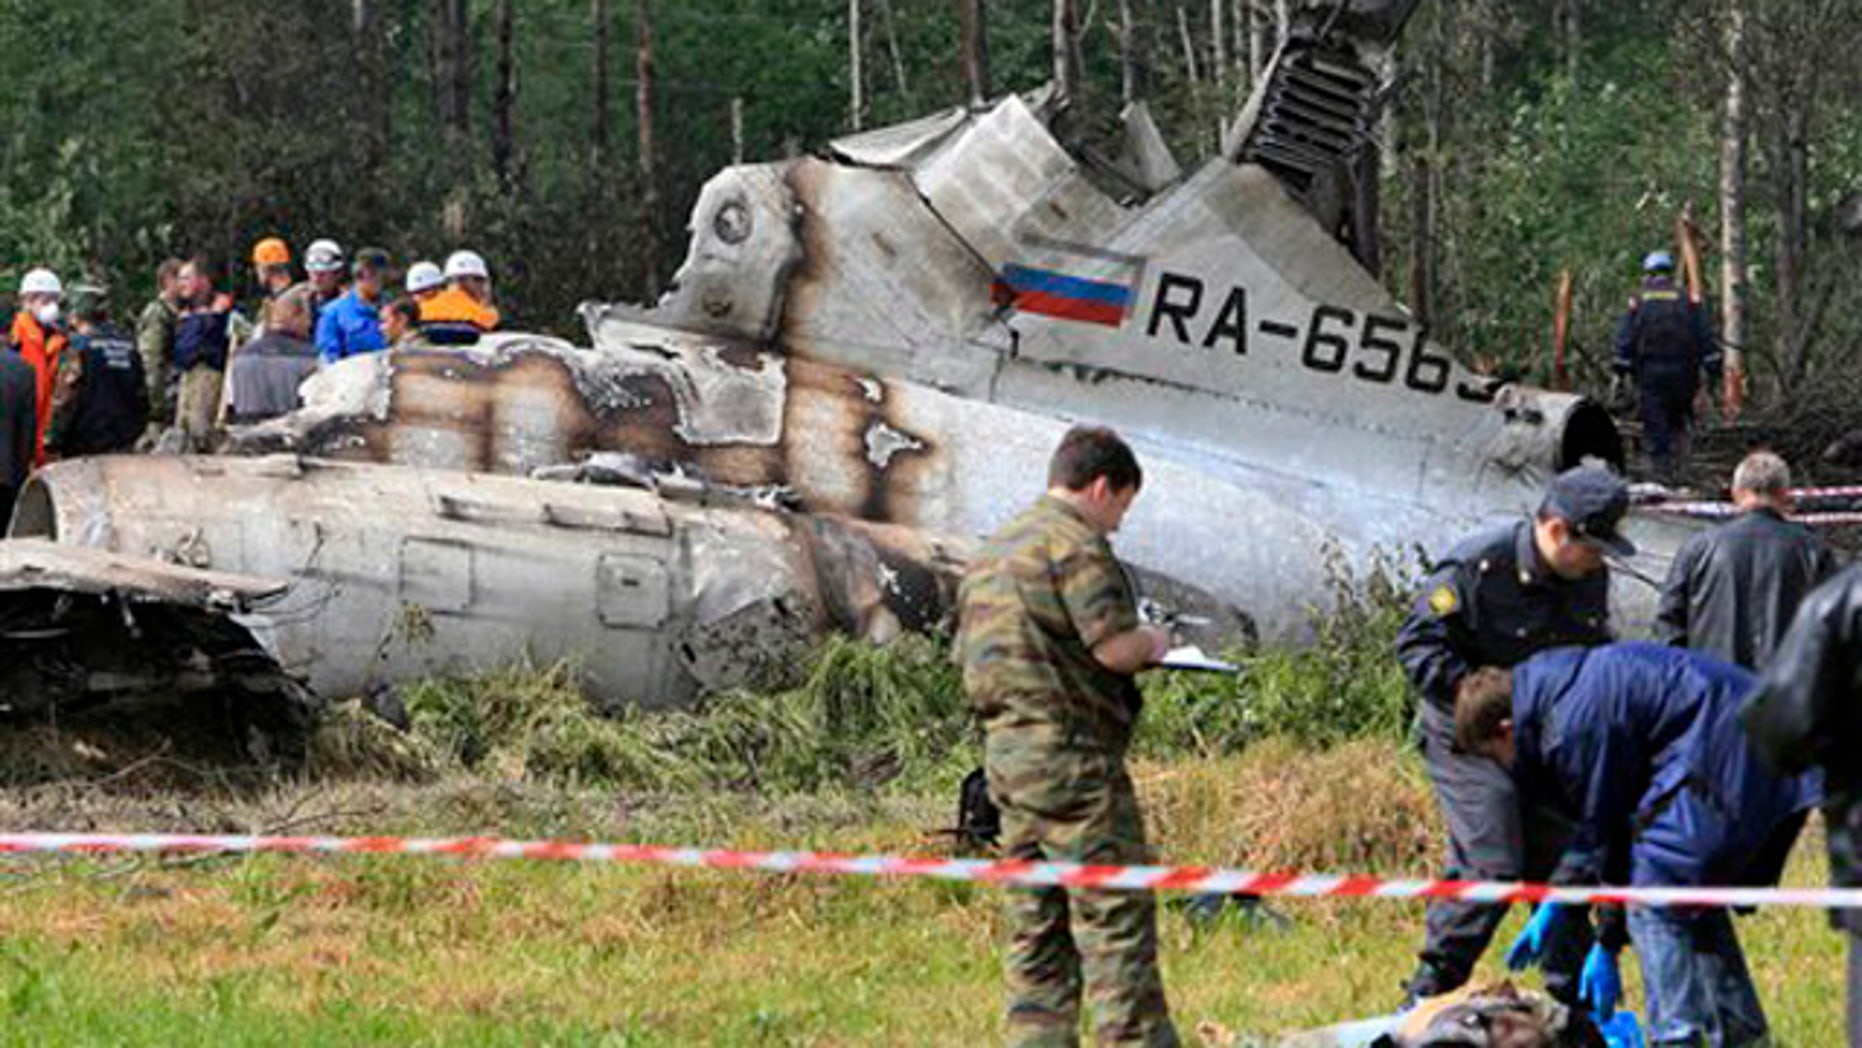 In this Tuesday, June 21, 2011 file photo, forensic experts examine a body near a wreckage of Tu-134 plane, belonging to the RusAir airline, near the city of Petrozavodsk, Russia.